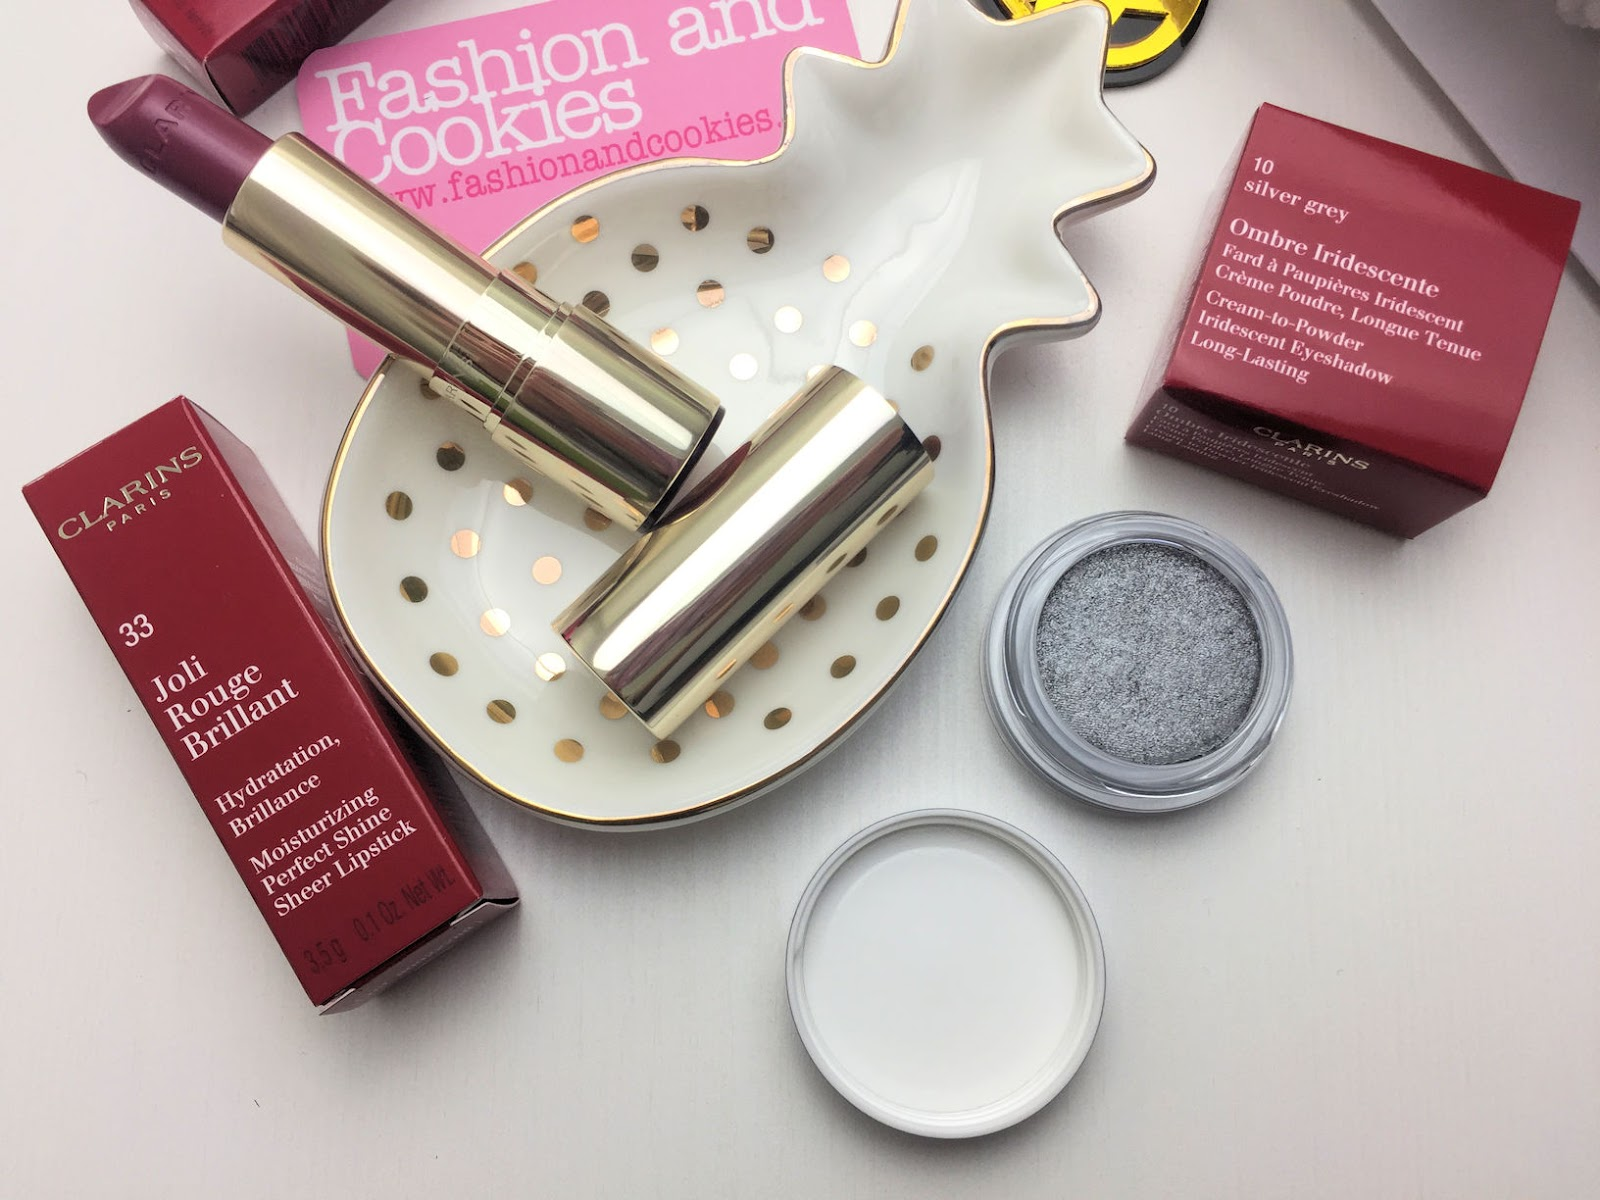 Clarins Contouring Perfection makeup Spring 2017 review su Fashion and Cookies beauty blog, beauty blogger